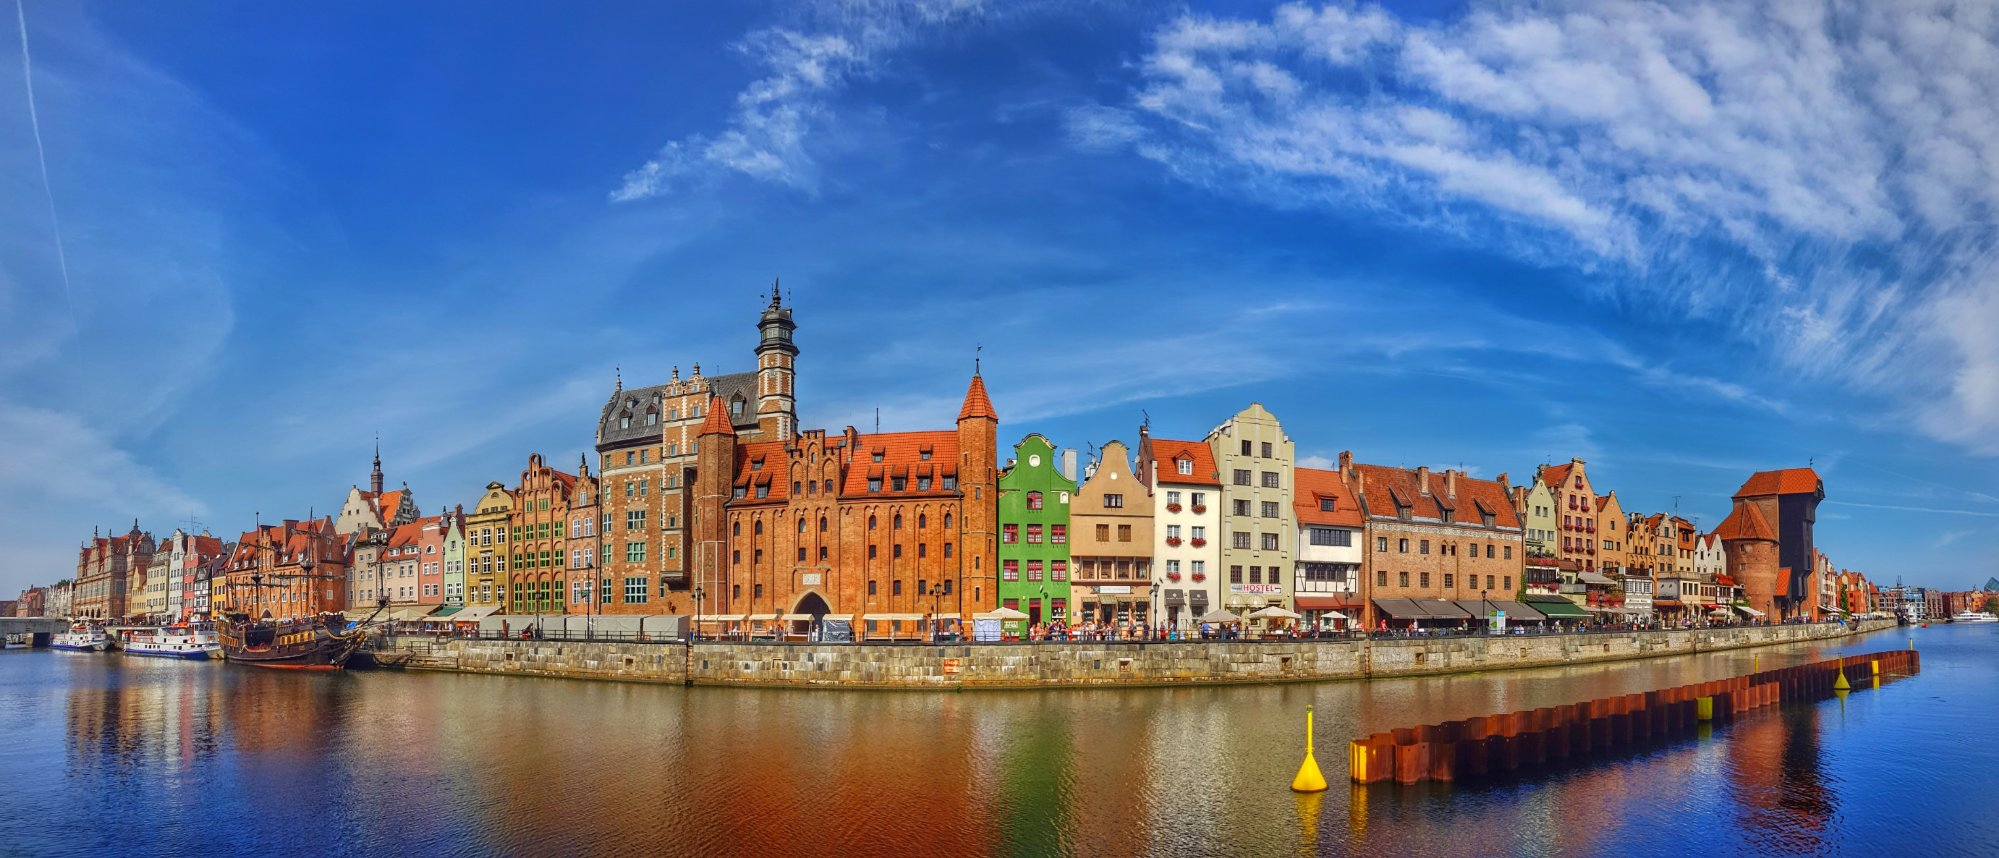 Gdansk: Polish Jewel of the Baltics - #visitGdansk #Gdansktrips #travelGdansk #Gdansktourism #Gdanskflights #Gdanskhotels #Gdanskhostels #Gdanskairbnb #Gdansktips #Gdanskbeaches #Gdanskmaps #Gdanskblog #Gdanskguide #Gdansktours #Gdanskbooking #Gdanskinfo #Gdansktripadvisor #Gdanskvisa #Gdanskitinerary #Gdansk